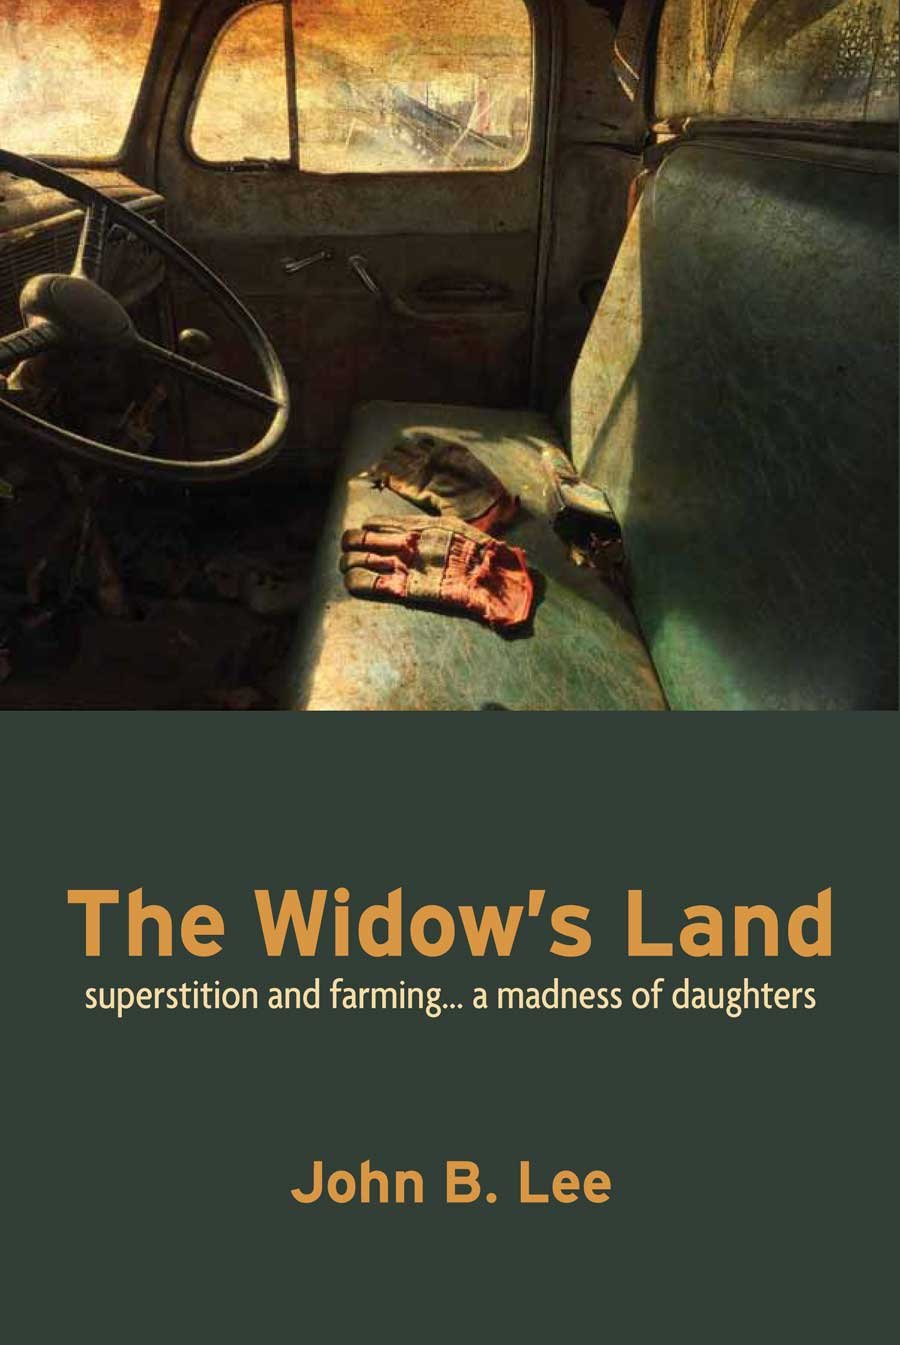 Download The Widow's Land: Superstition and Farming... a Madness of Daughters ebook